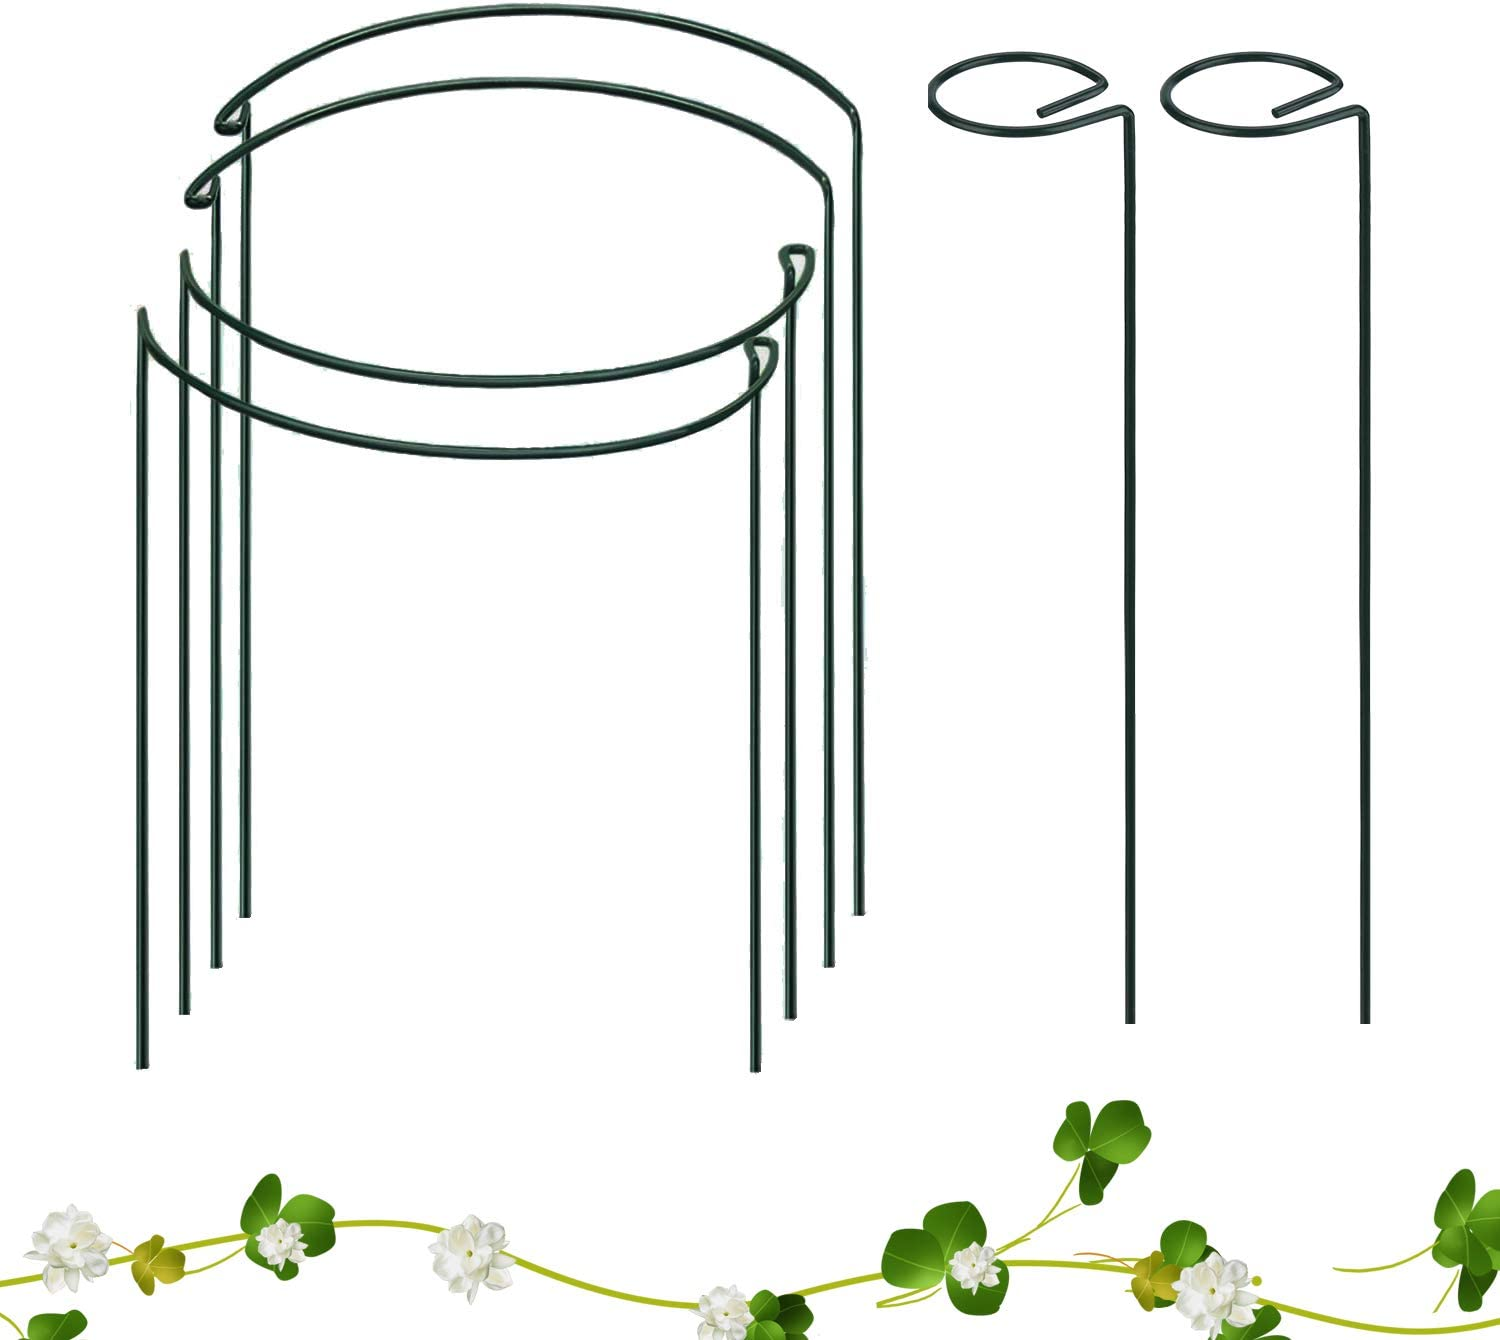 6 Packs Plant Support Stakes, Including 4 Packs Half Round Garden Plant Support Ring Hoop, 2 Packs Single Stem Support Stakes, Plant Support Ring Cage for Flowers,Tomatoes, Orchid, Peony, Lily, Rose